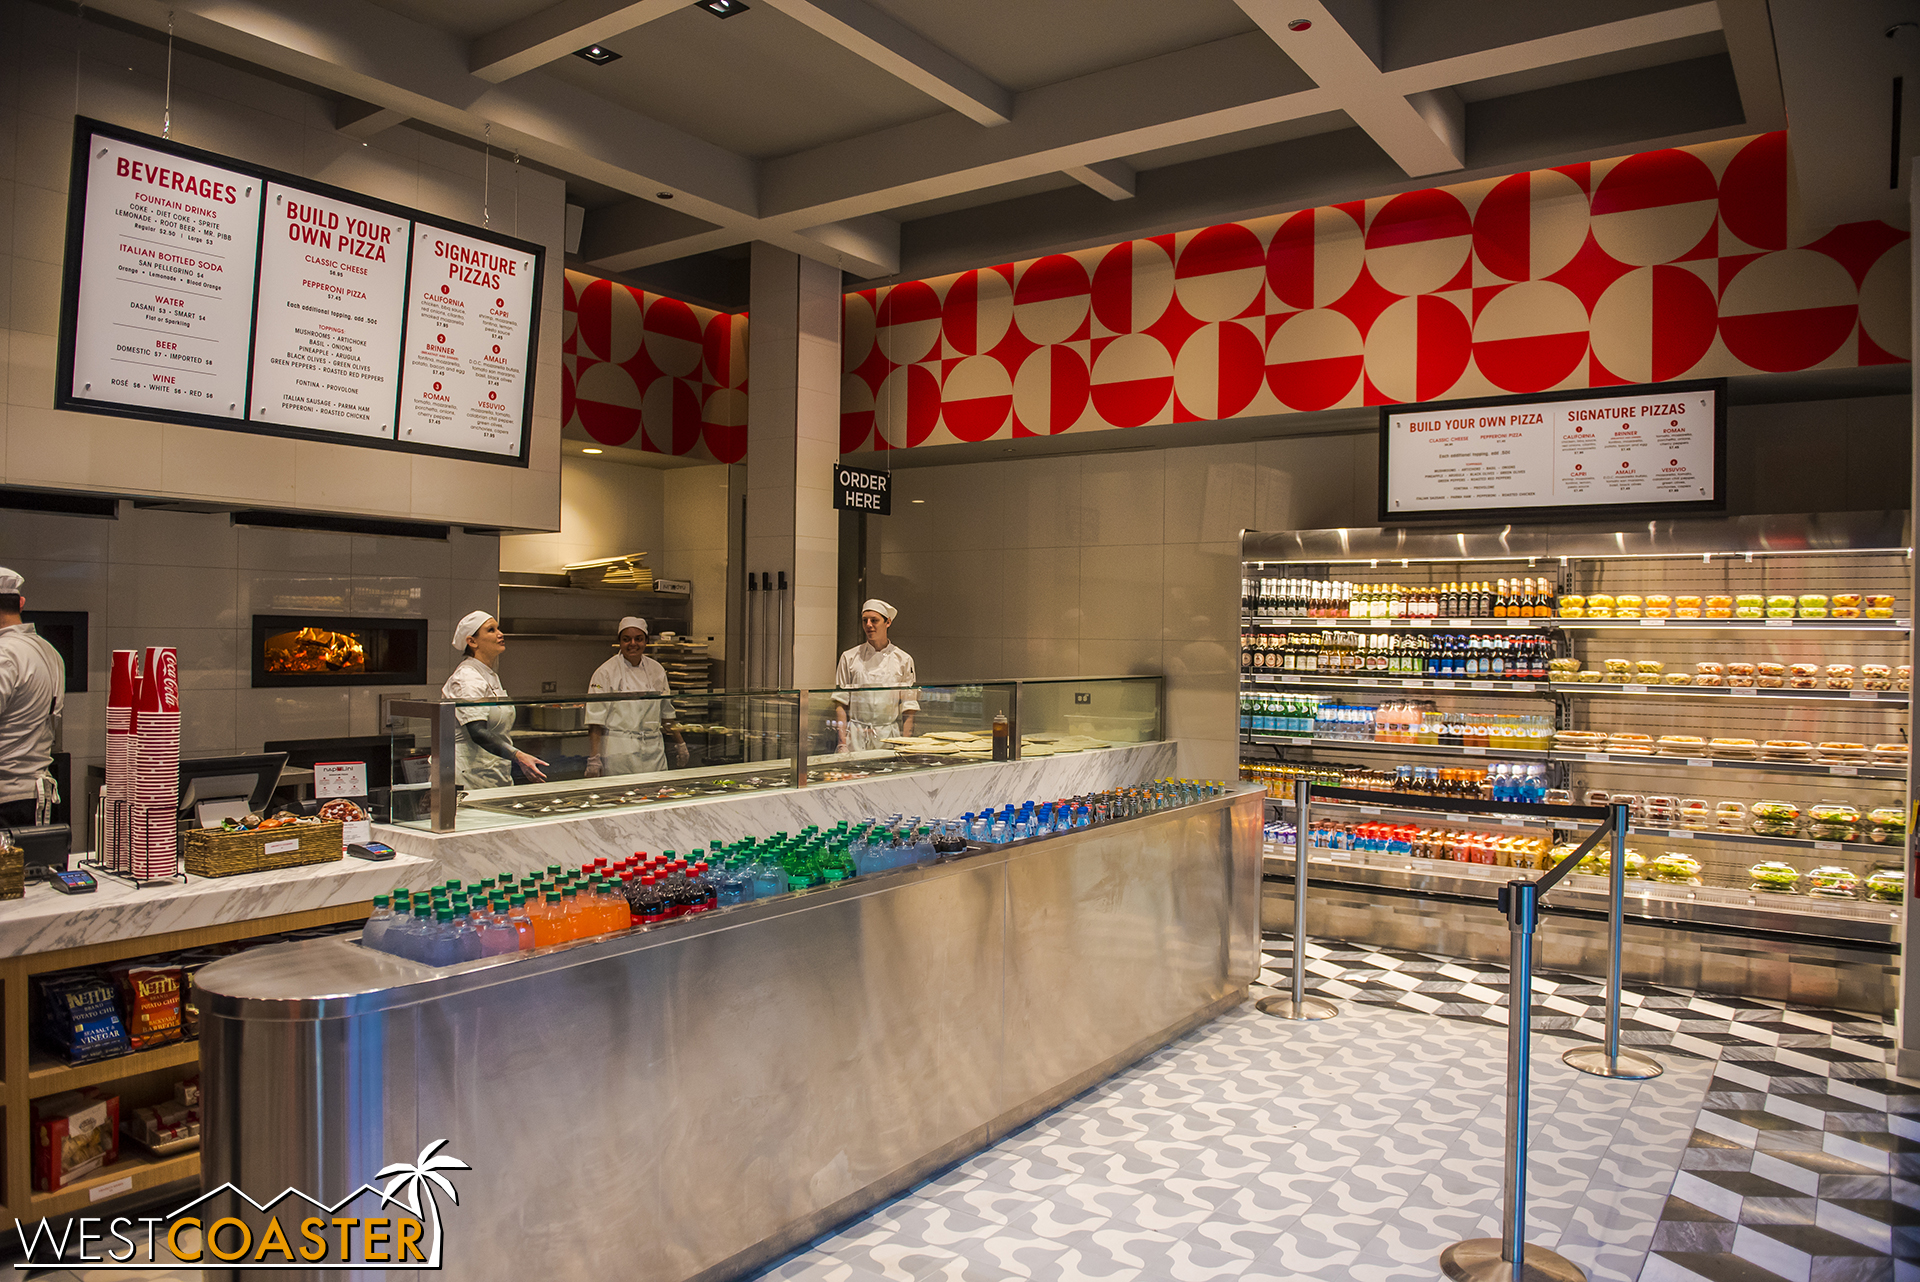 """Inside, you can find a fast food """"build your own pizza"""" style diner, similar to Blaze Pizza and similar establishments."""